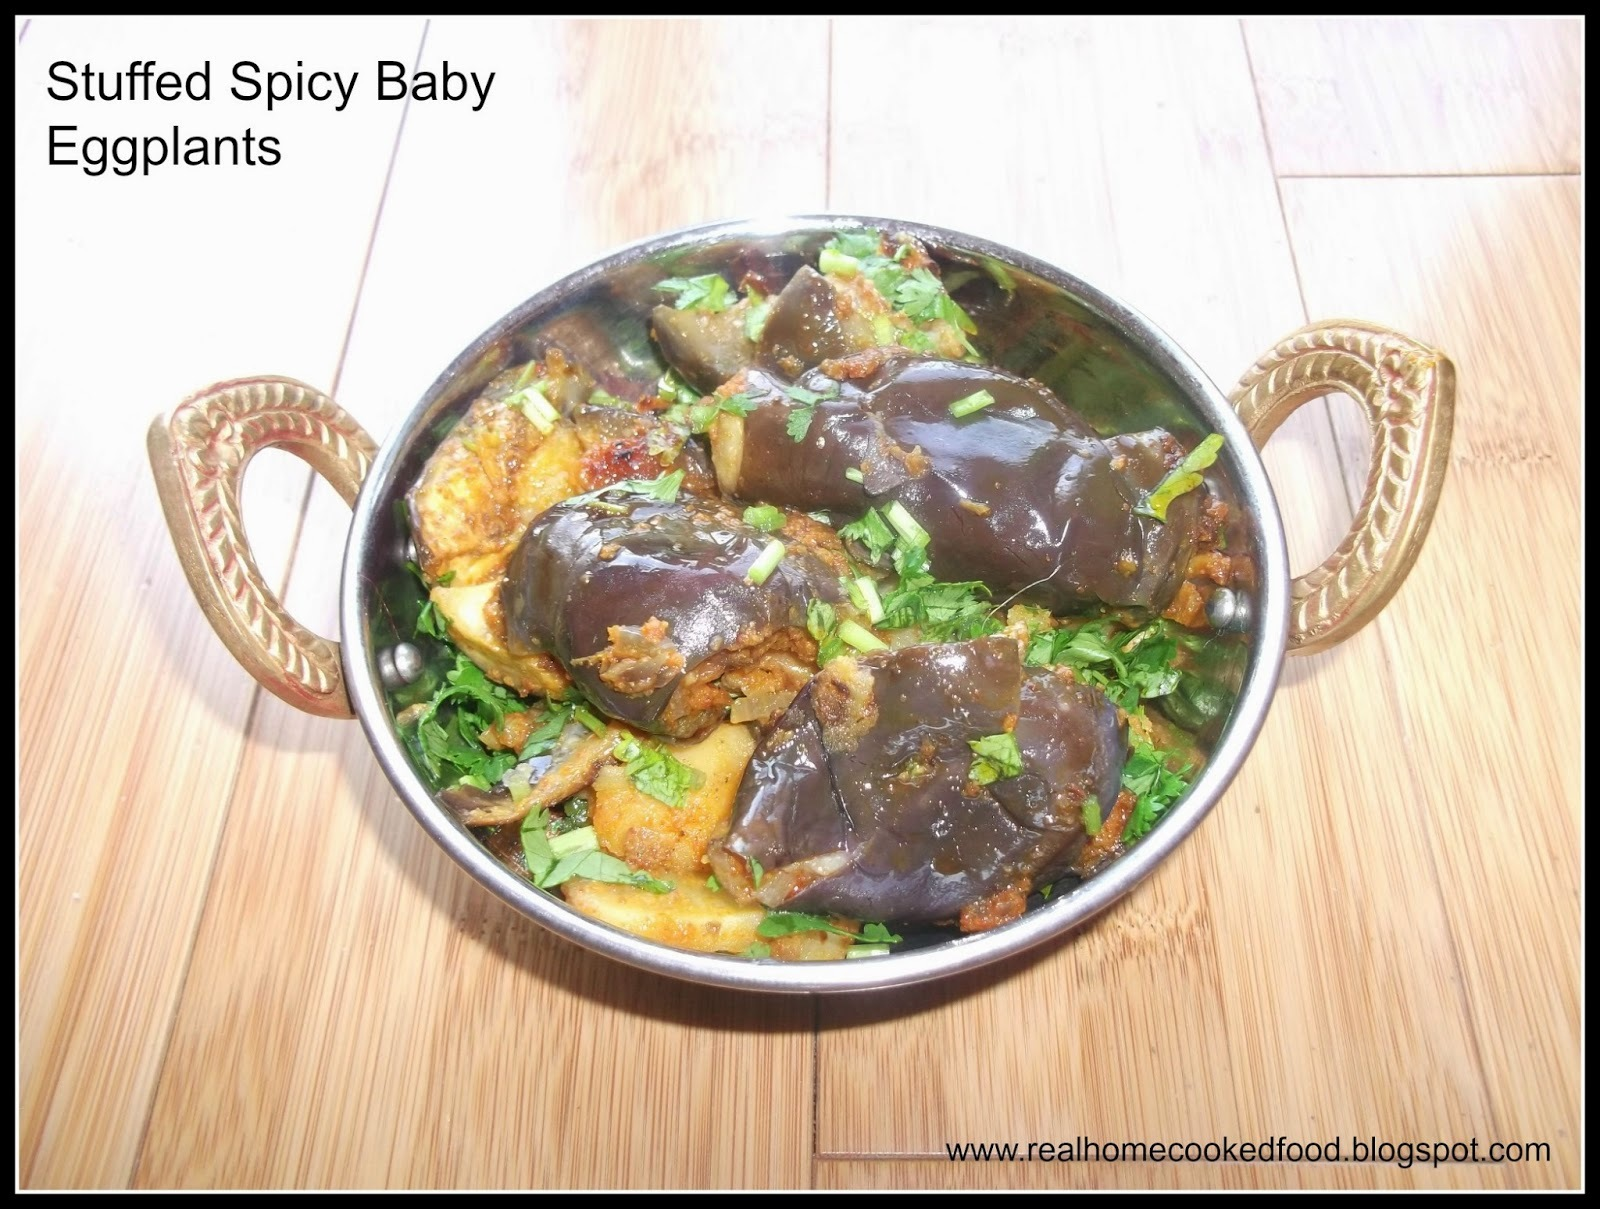 Stuffed Spicy Baby Eggplants